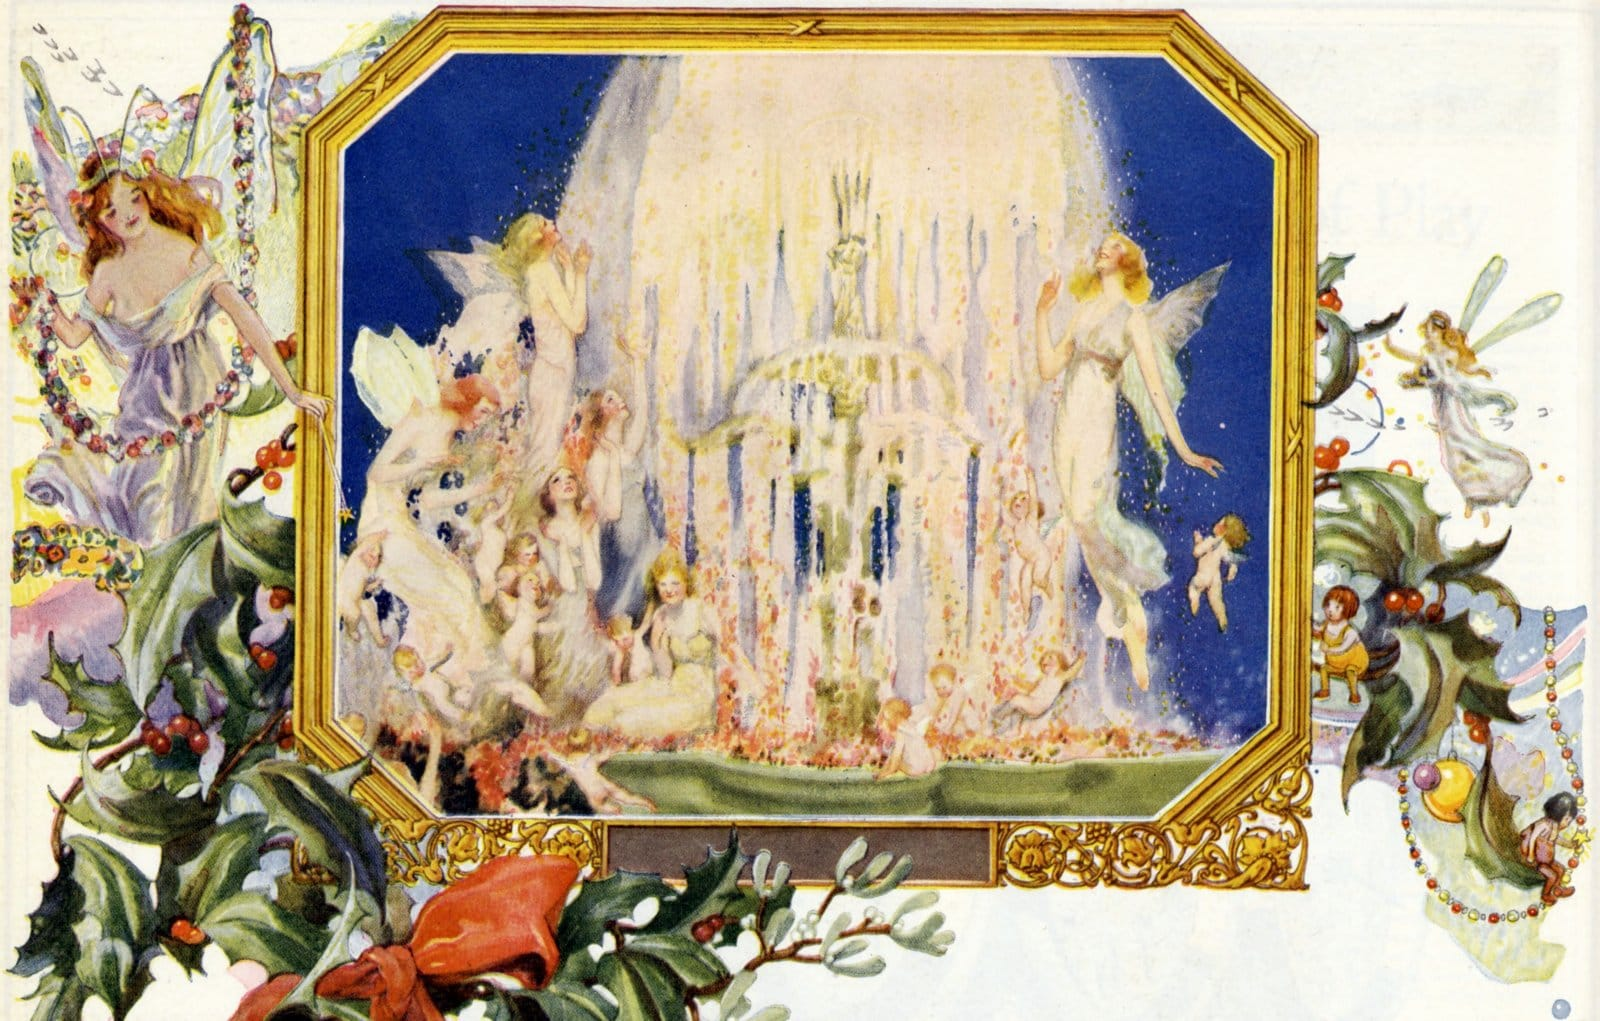 Magical fairies - Artwork from around 1920 at Click Americana